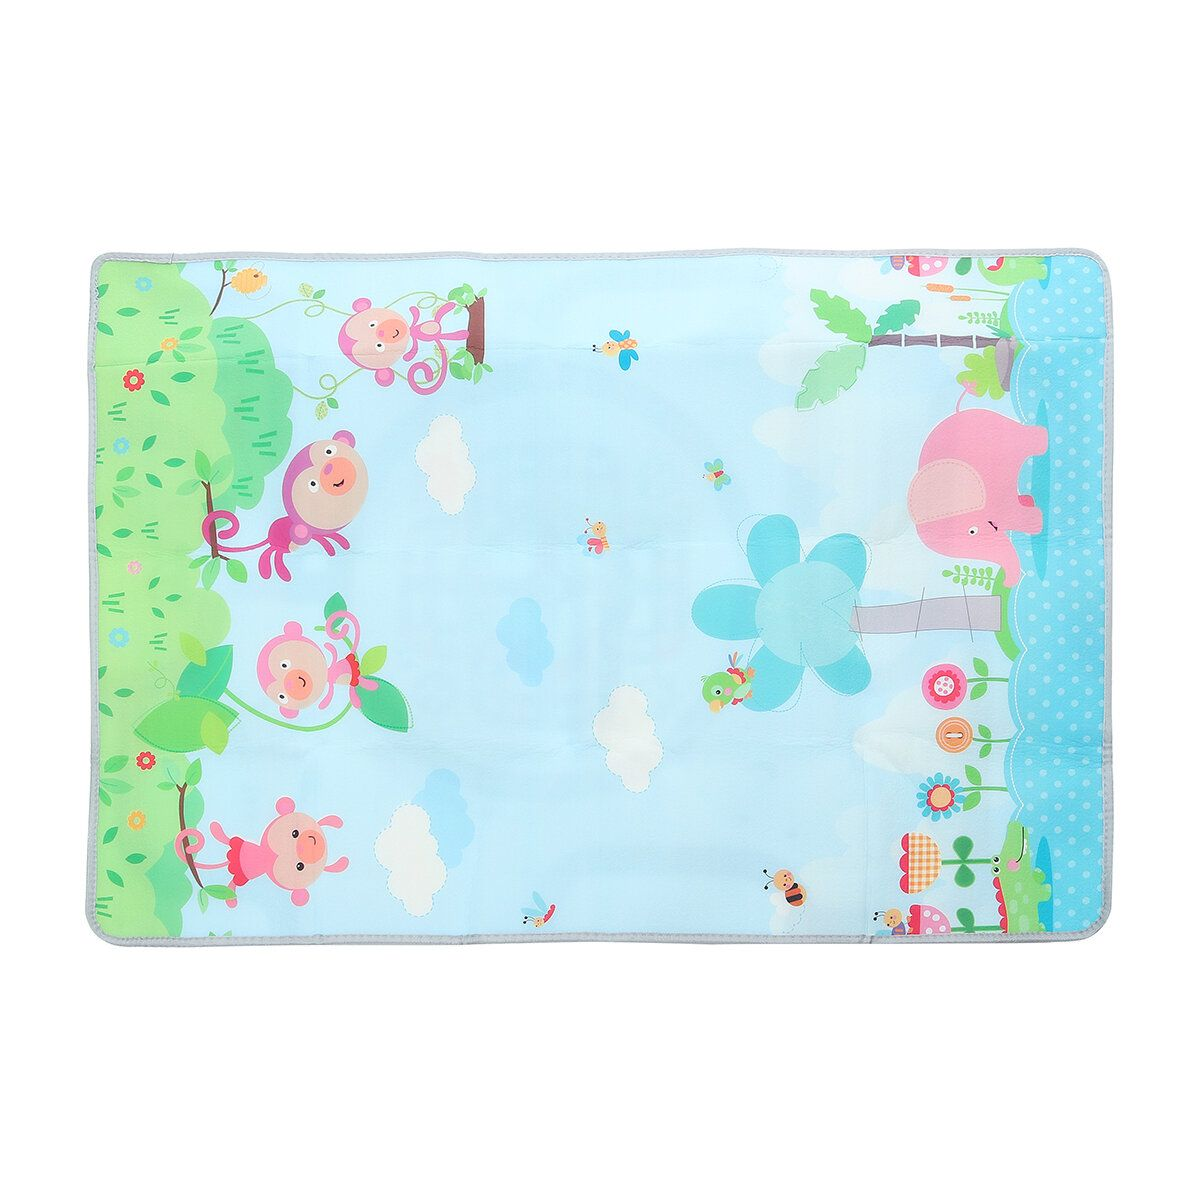 Baby Crawling Thick Play Cover Mat Game Rug Waterproof Floor Carpet Playing Mat